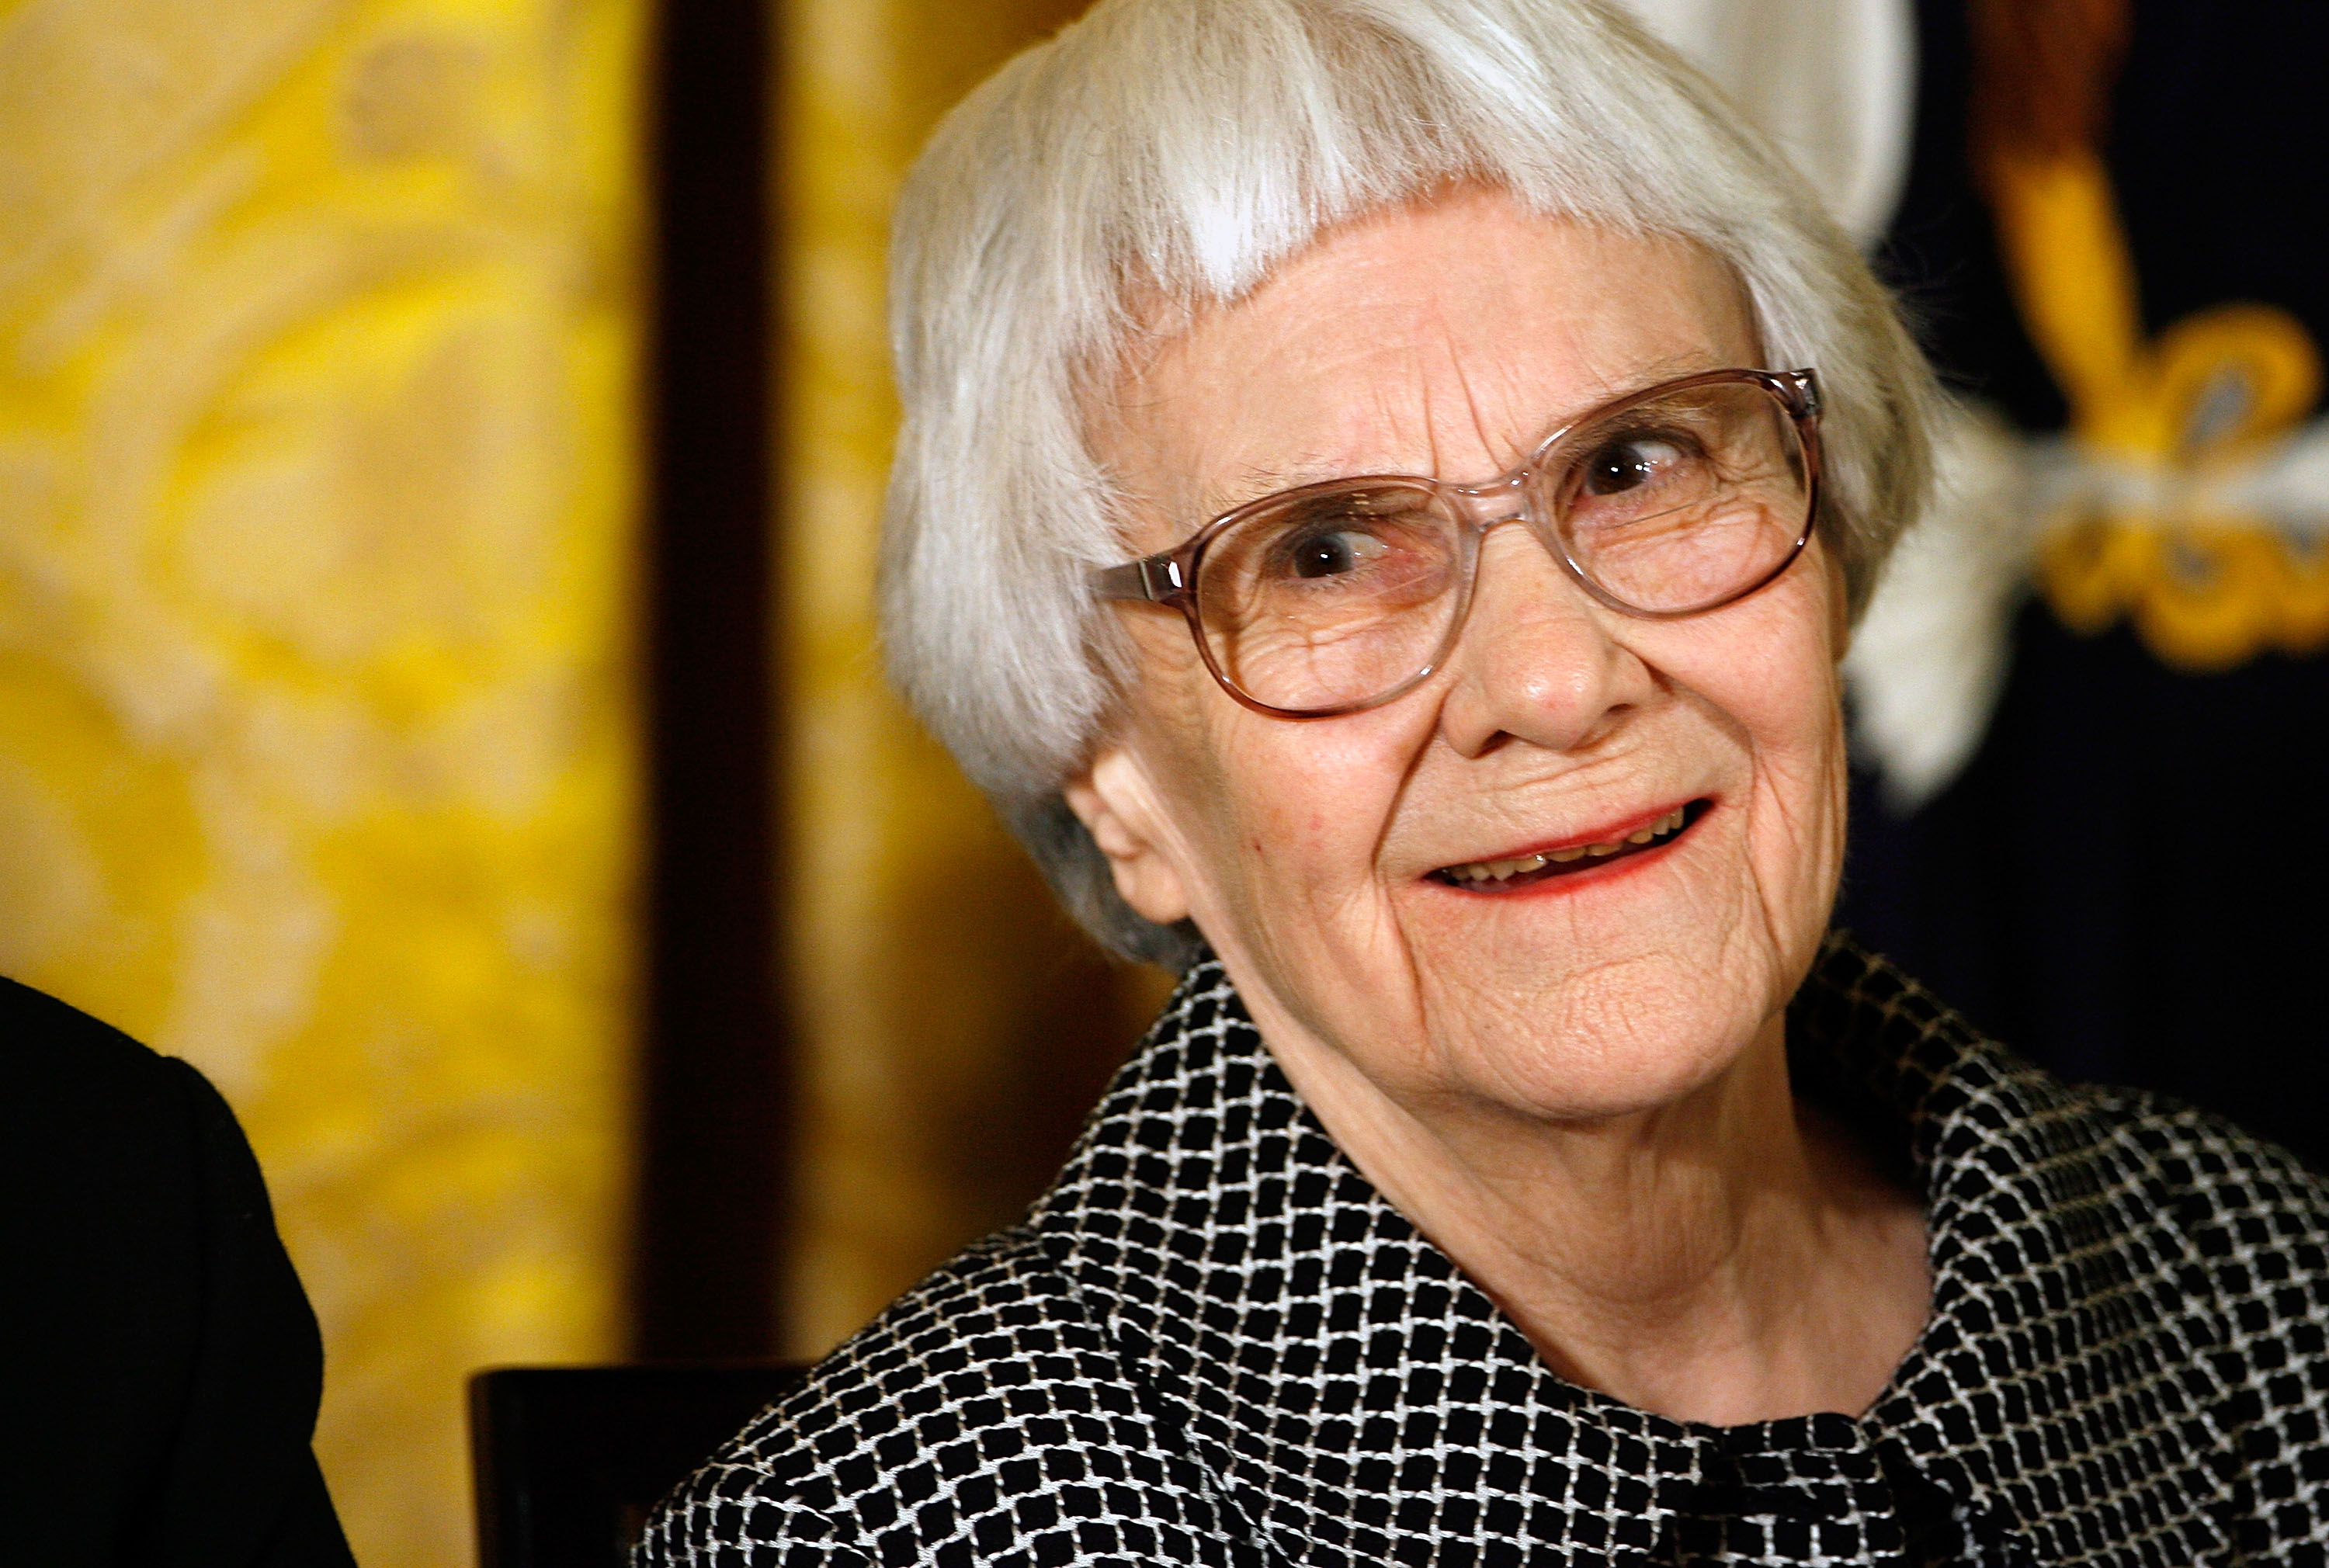 Happy birthday, Harper Lee—and thank you for changing my life